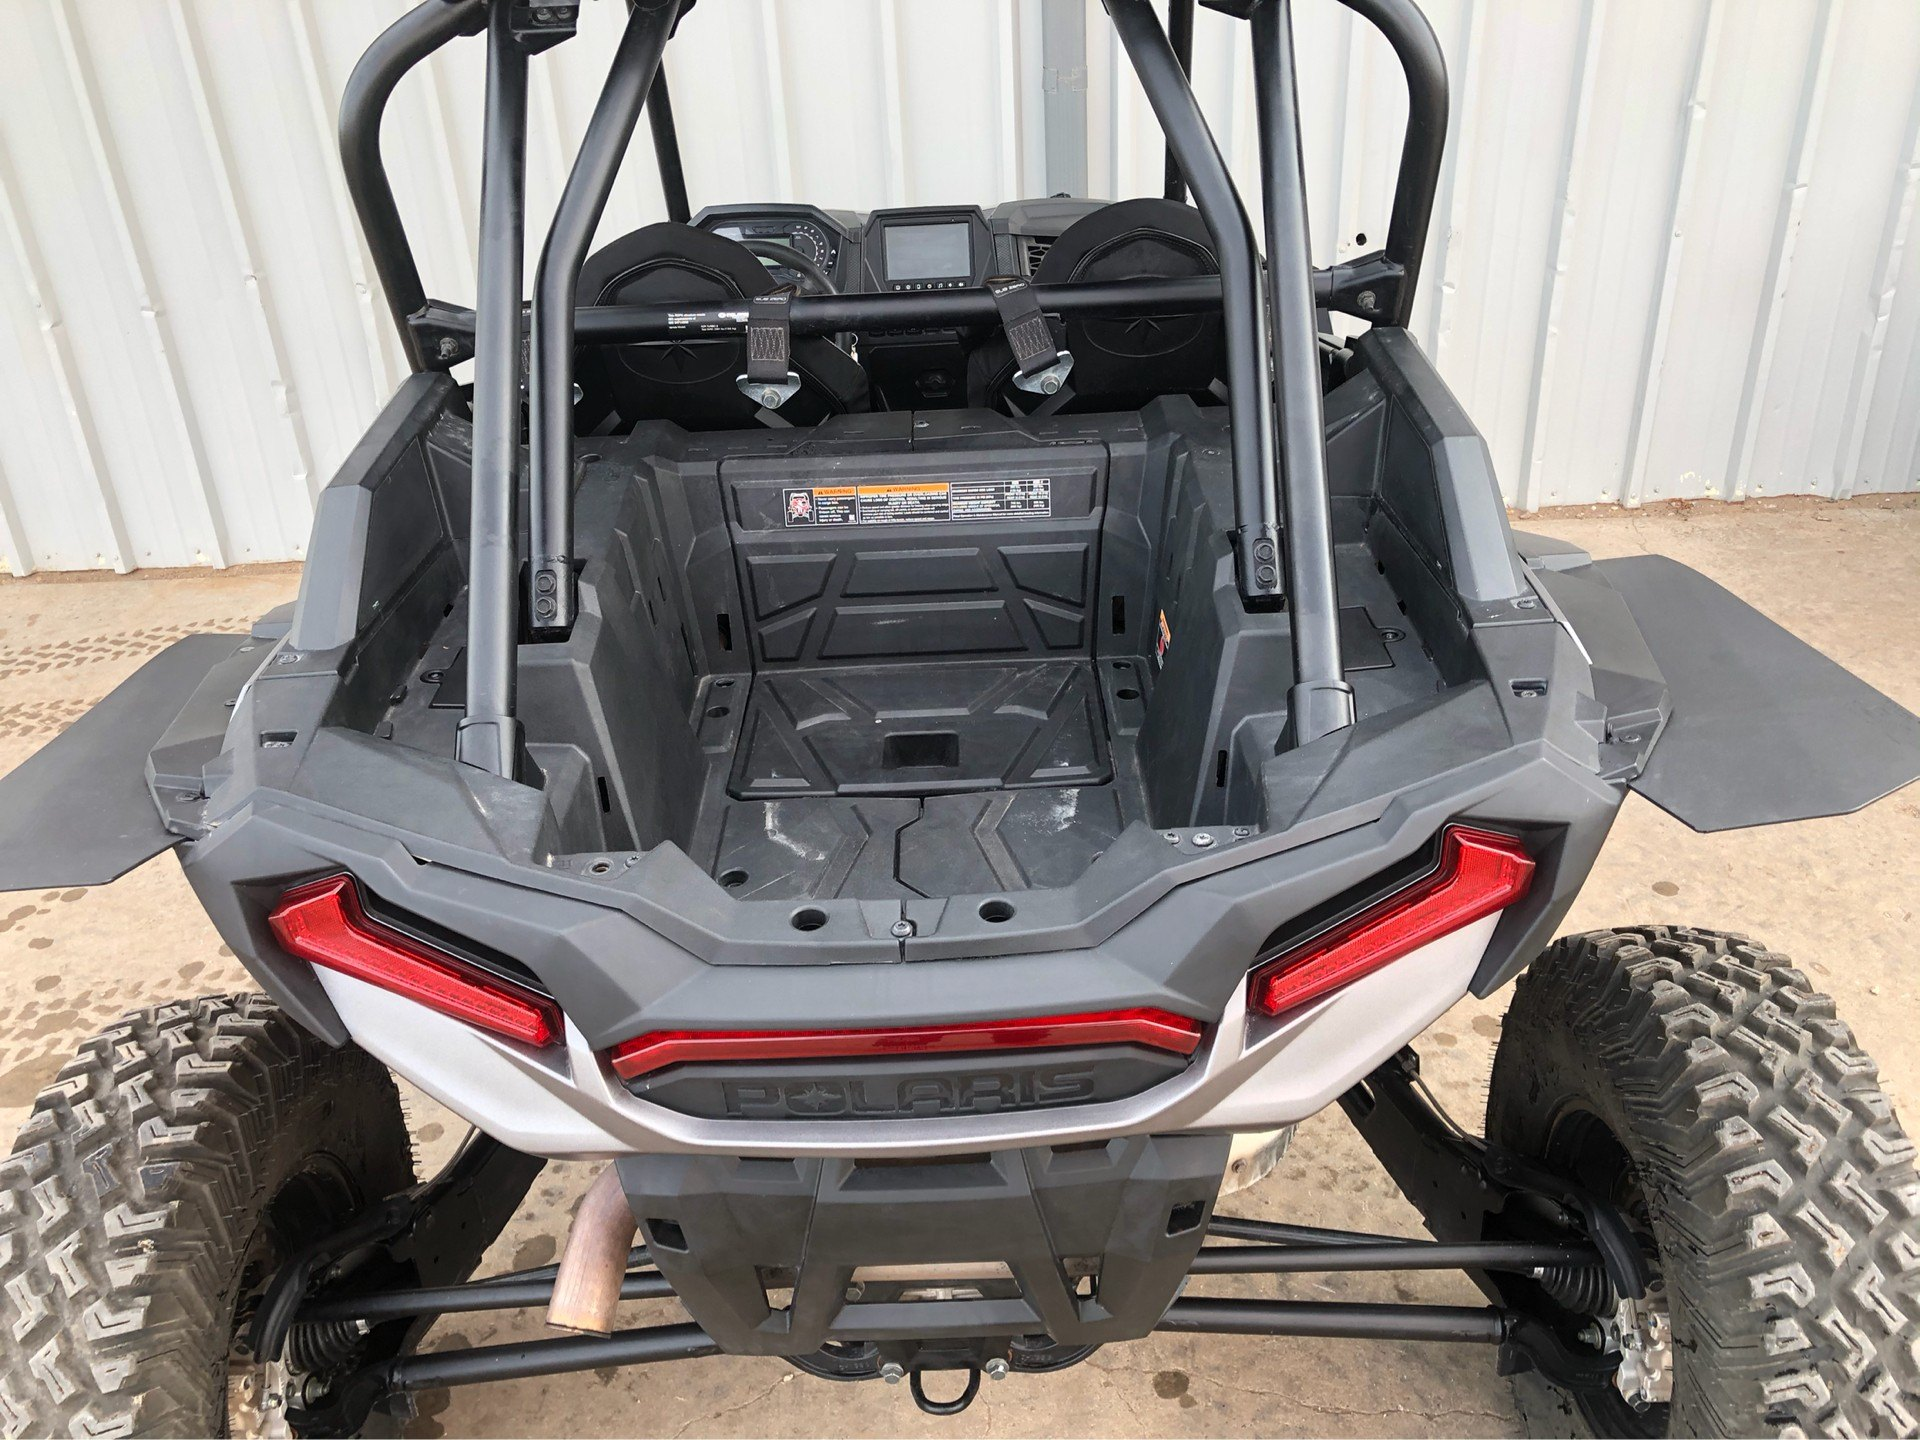 2019 Polaris RZR XP Turbo S in Amarillo, Texas - Photo 6